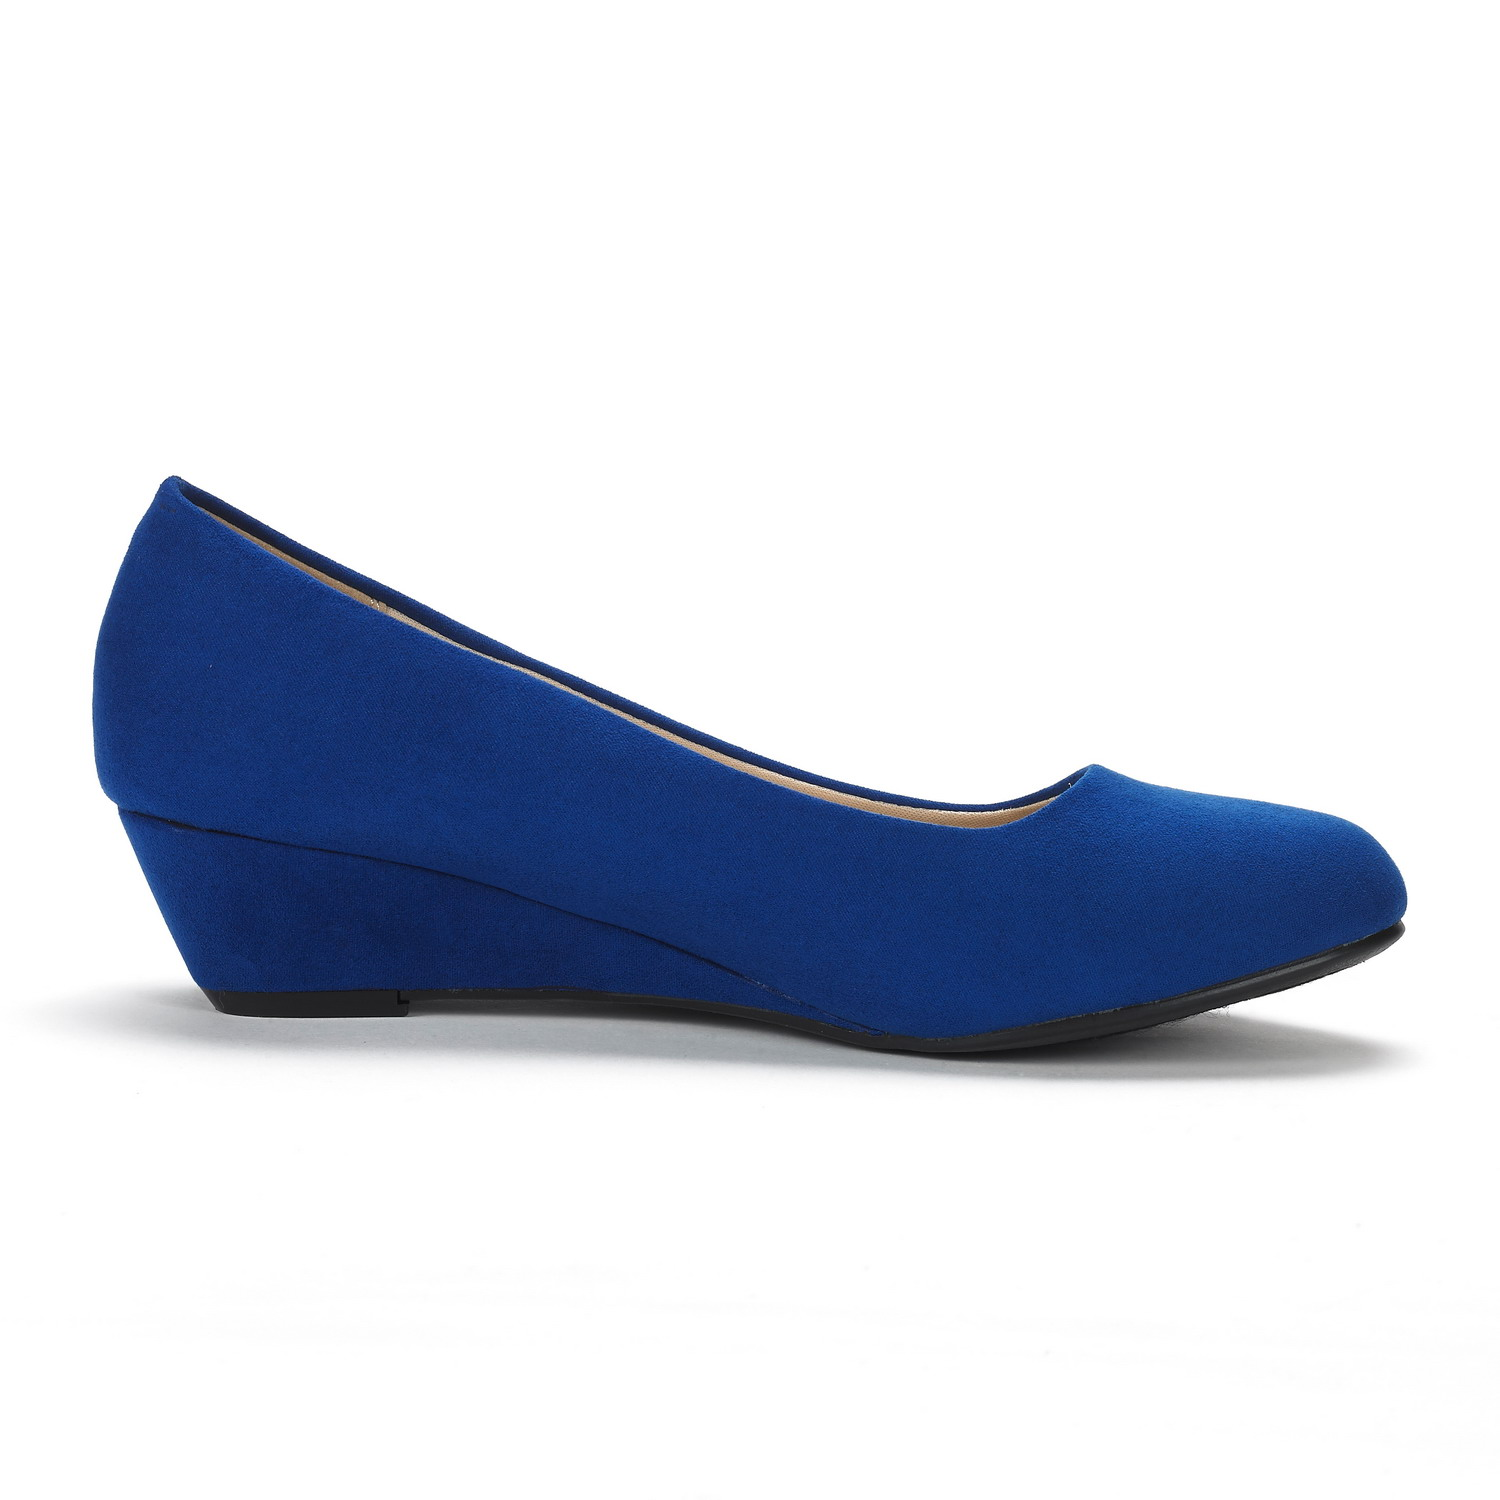 DREAM-PAIRS-Women-039-s-Mid-Wedge-Heel-Shoes-Slip-On-Comfort-Dress-Shoes-Suede-PU thumbnail 29